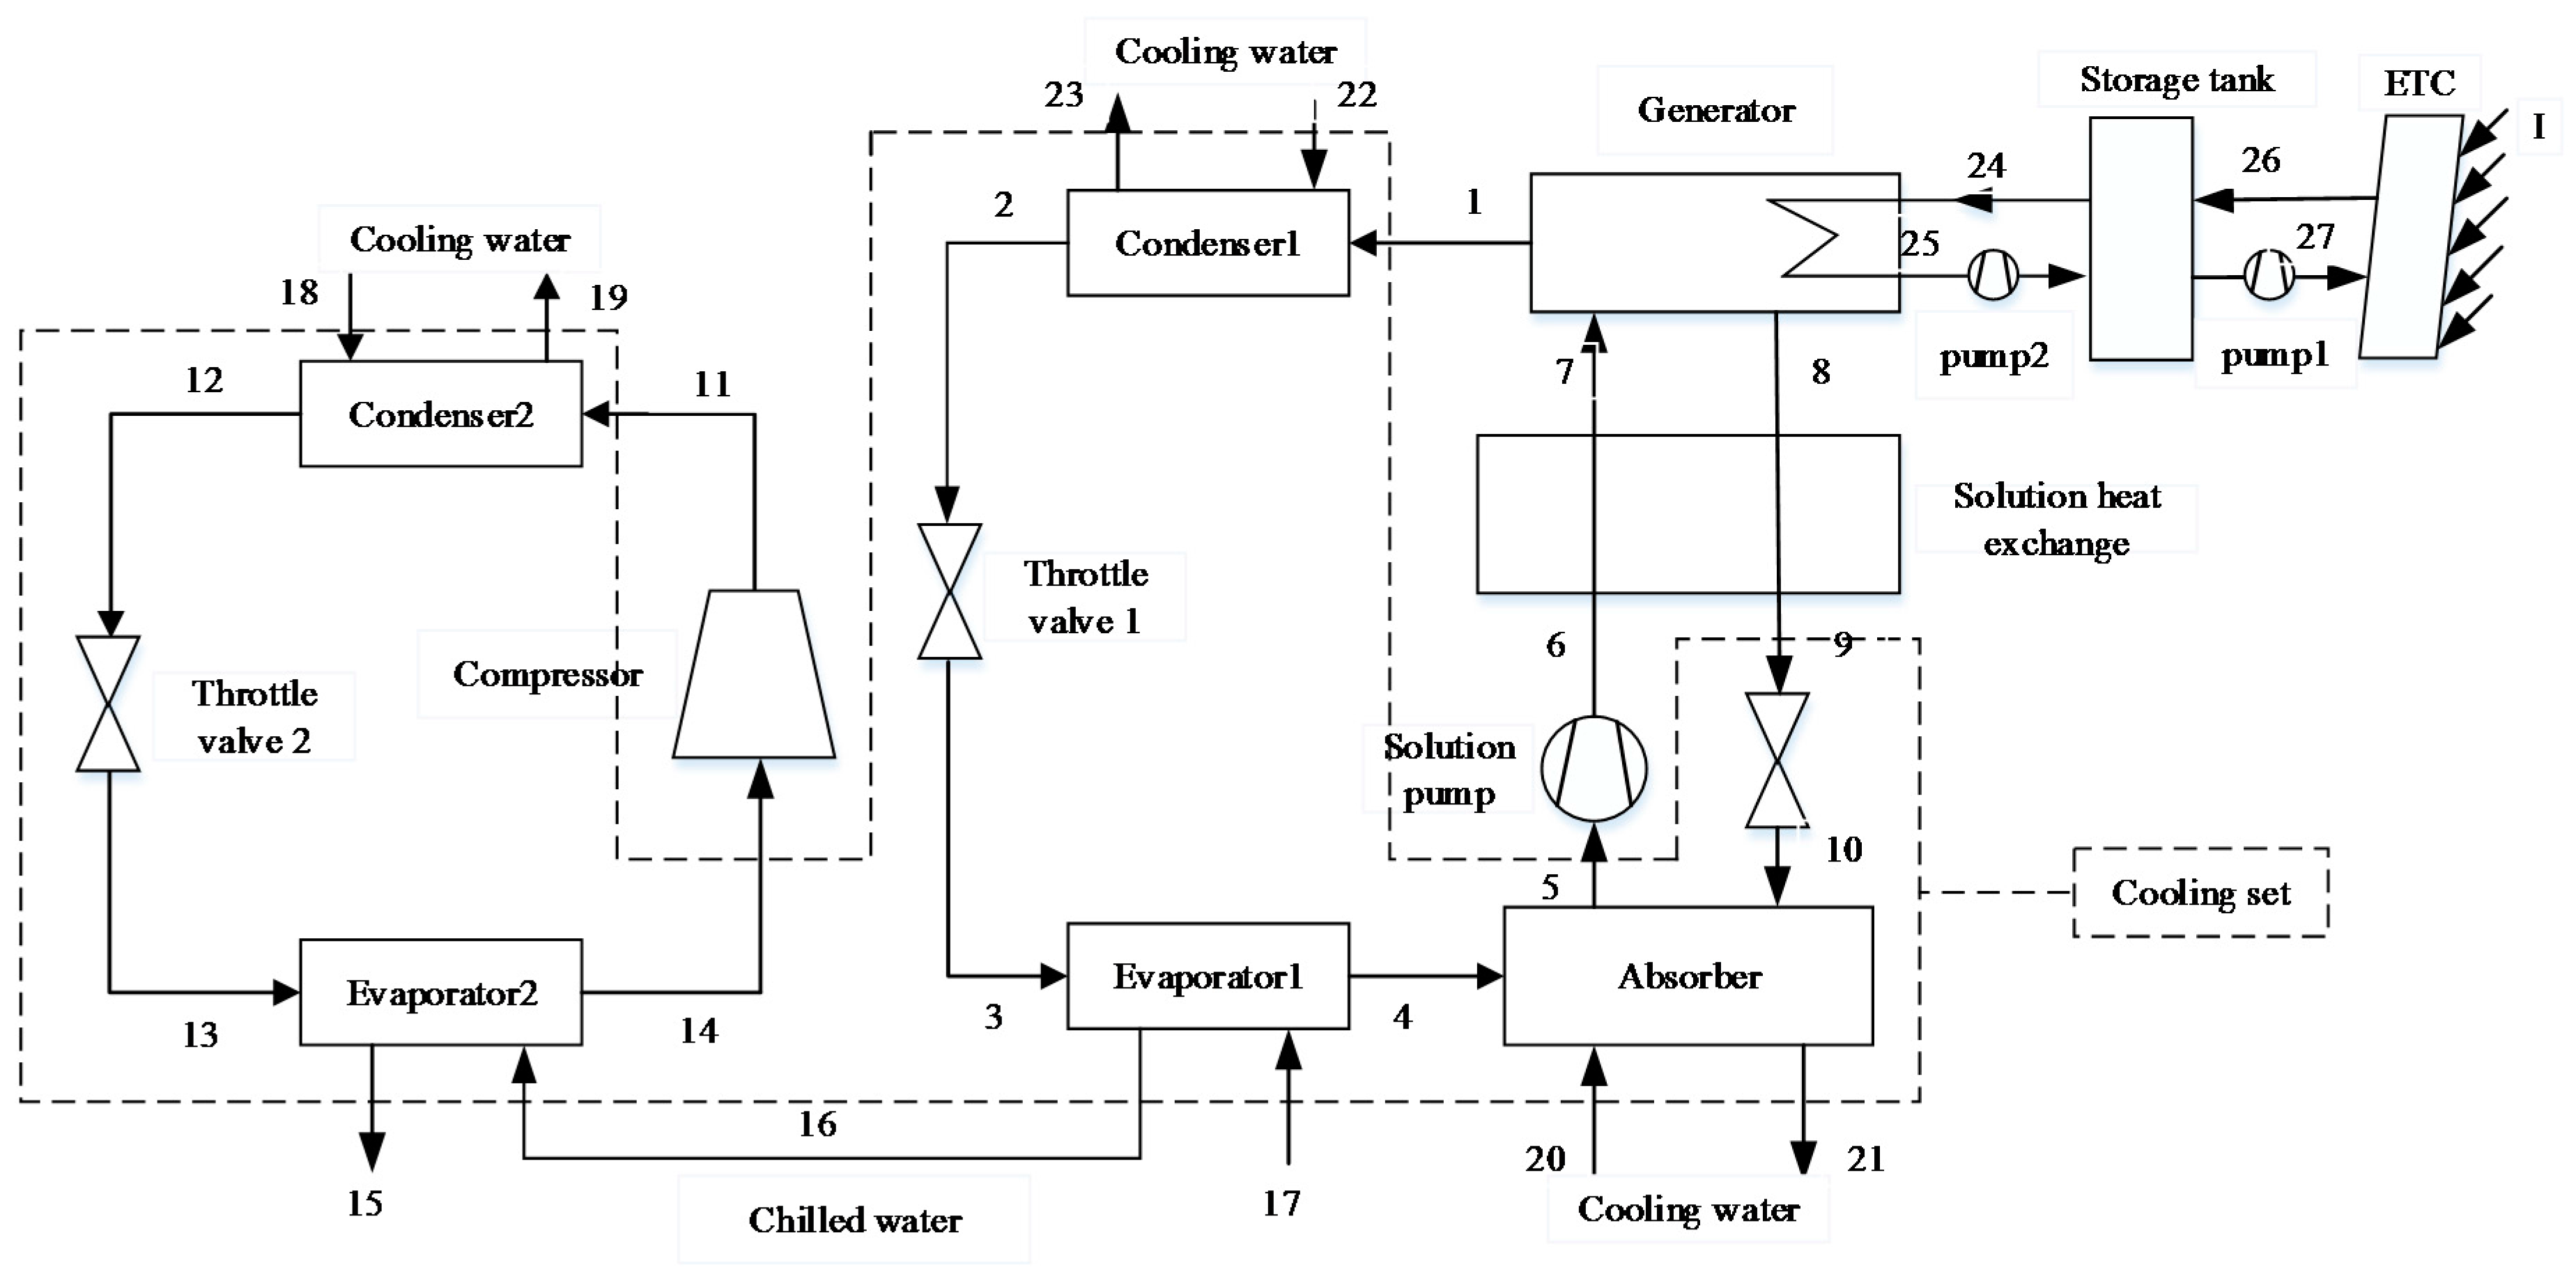 a review of absorption refrigeration technologies engineering essay Mechanical engineering faculty, technological university of pereira, pereira,   system, absorption ejecto-compression chiller, exergoeconomic analysis.